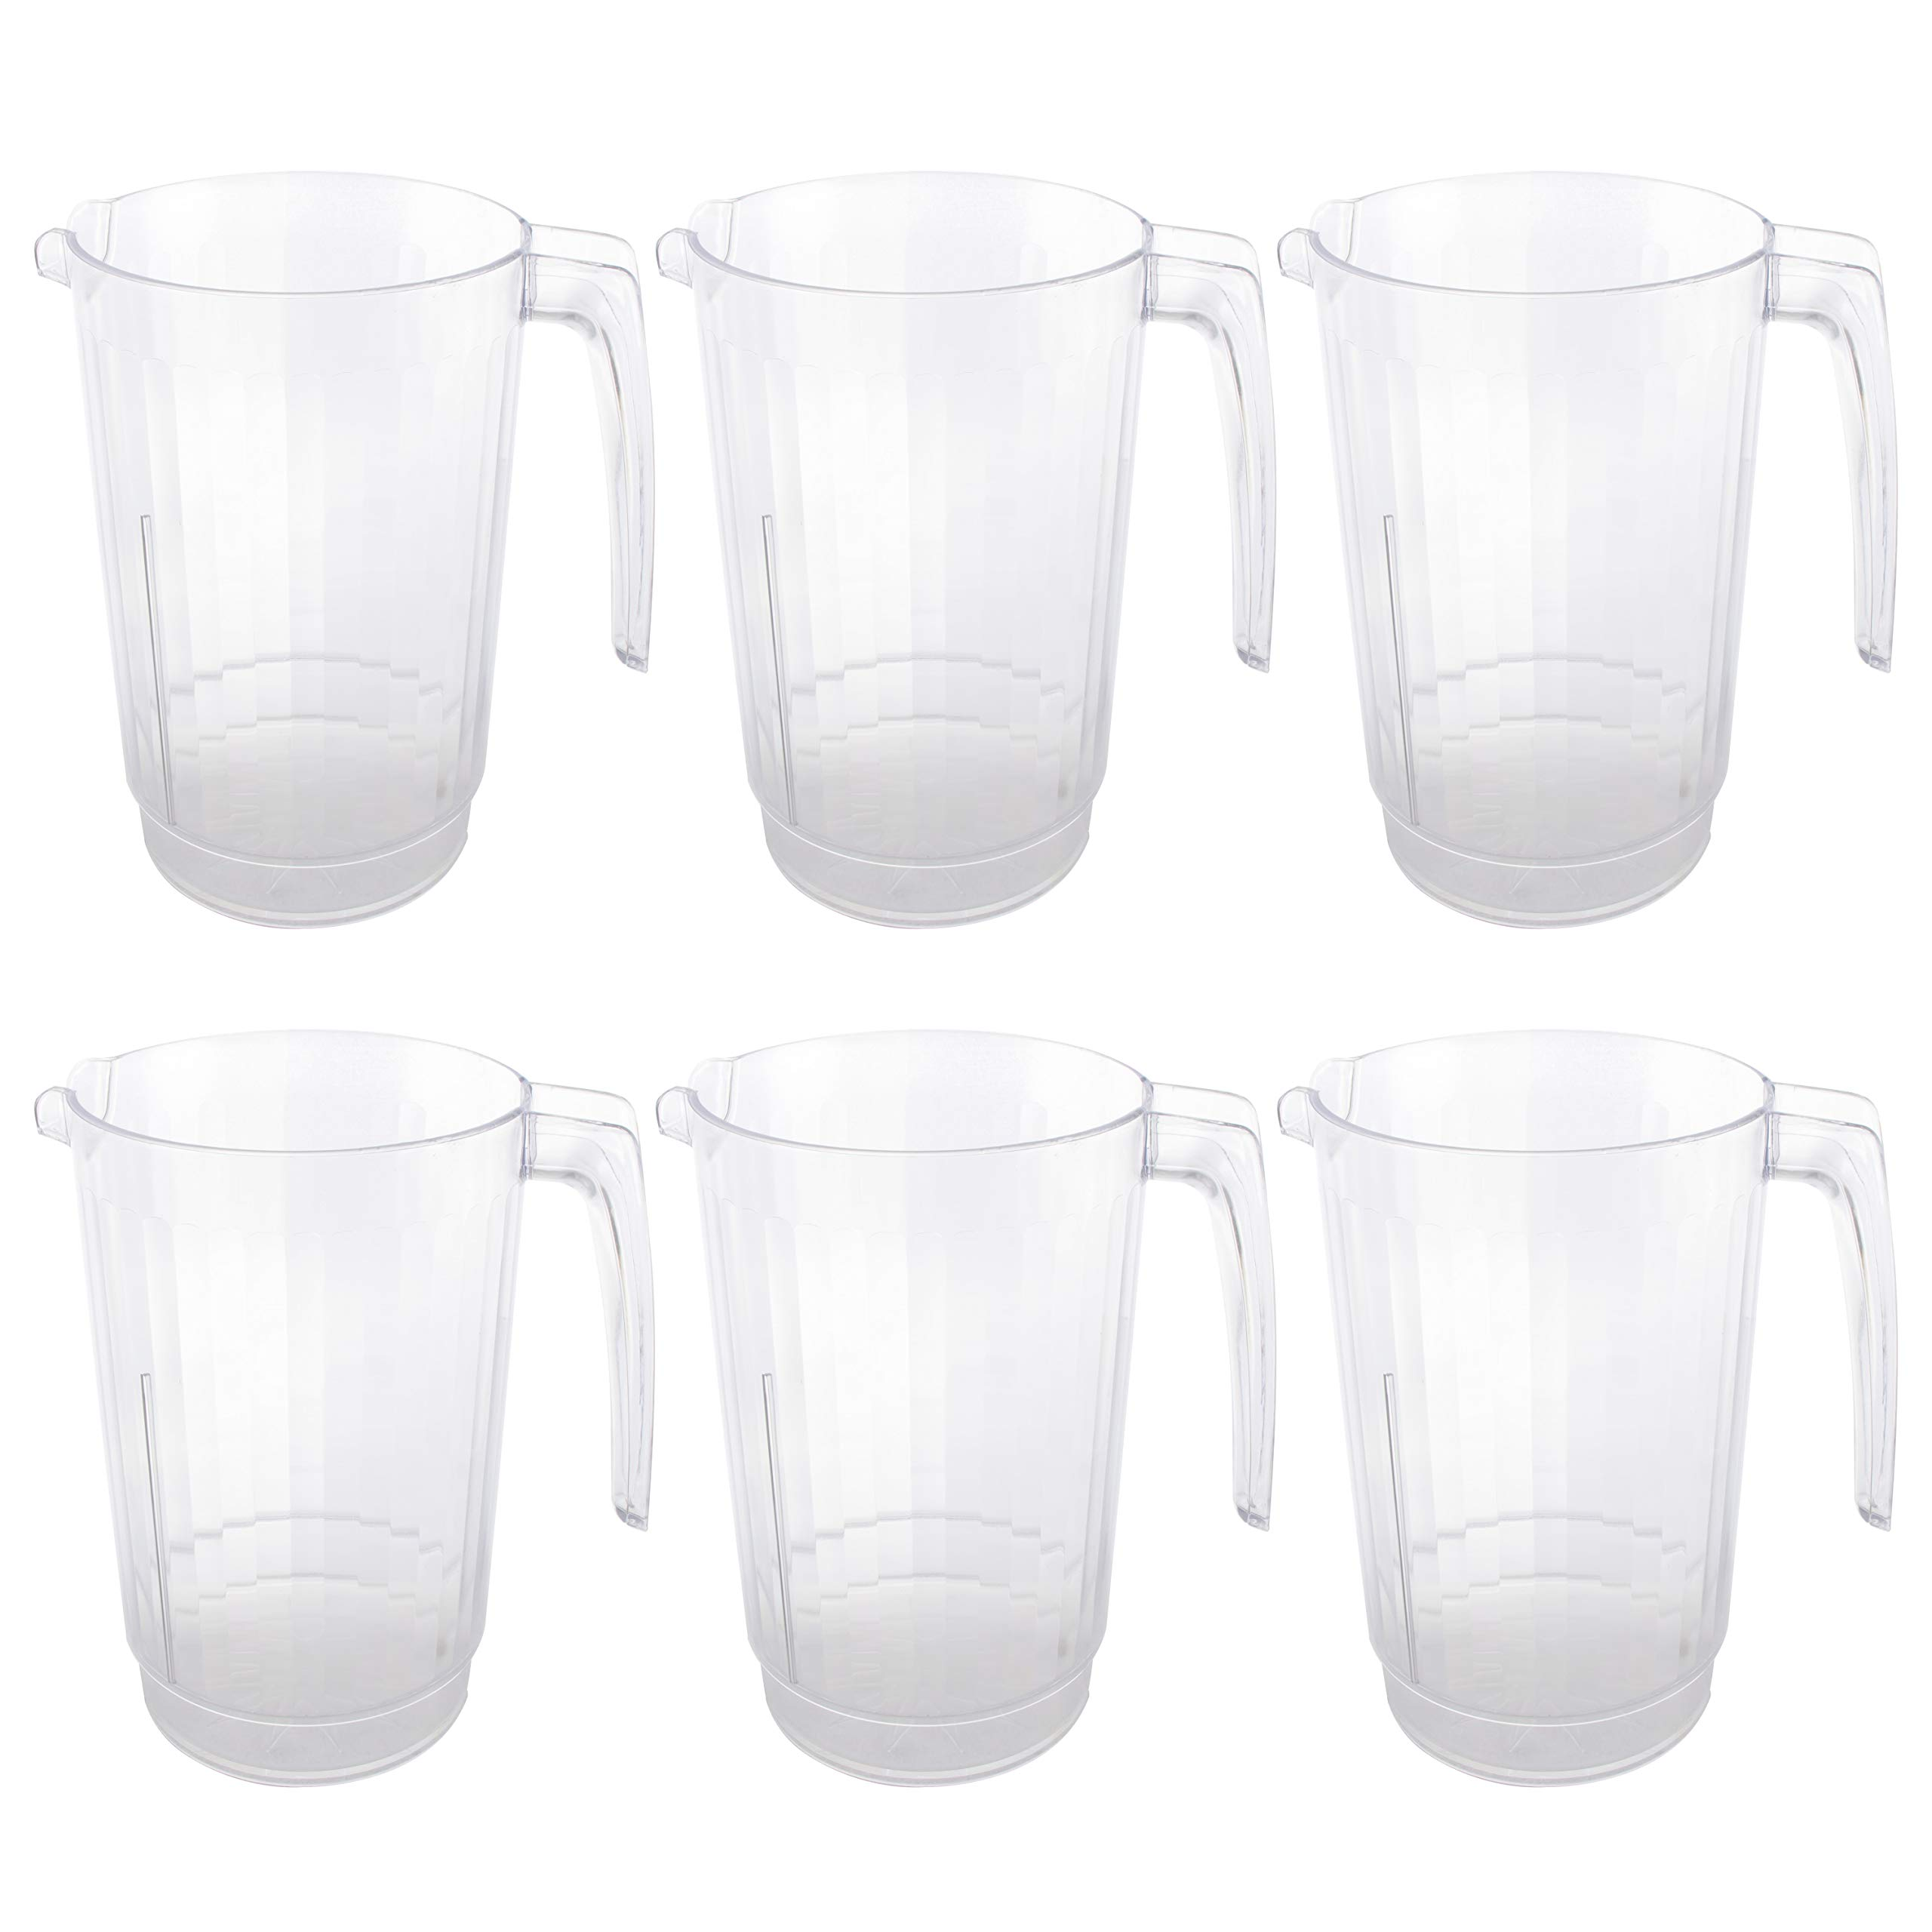 64 oz Plastic Water Pitchers Clear Beer Drink 6 PK